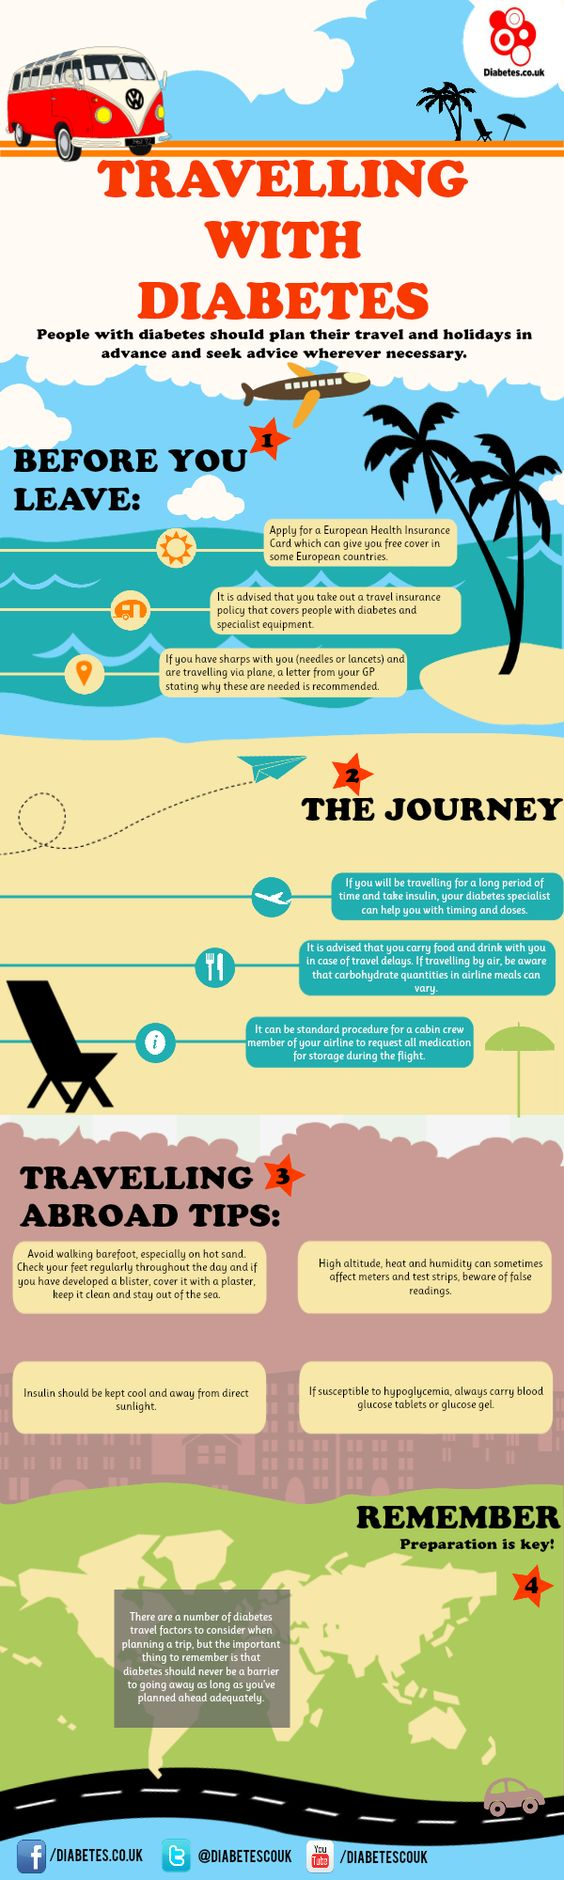 Travelling with diabetes infographic #diabetes